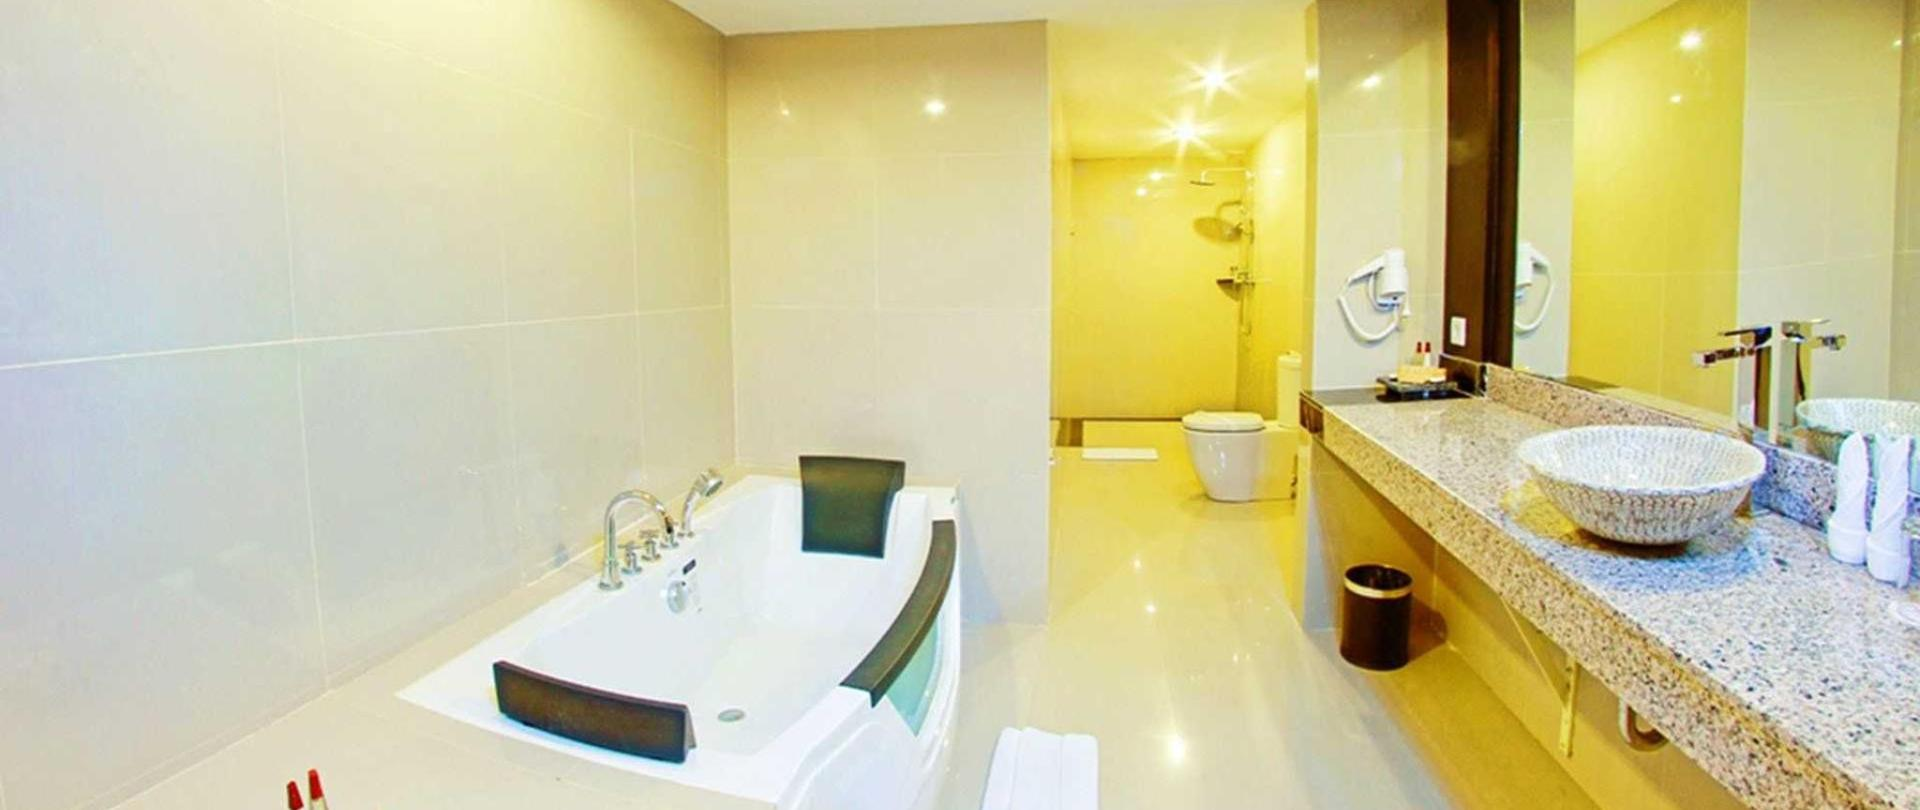 18-penthouse-bathroom.jpg